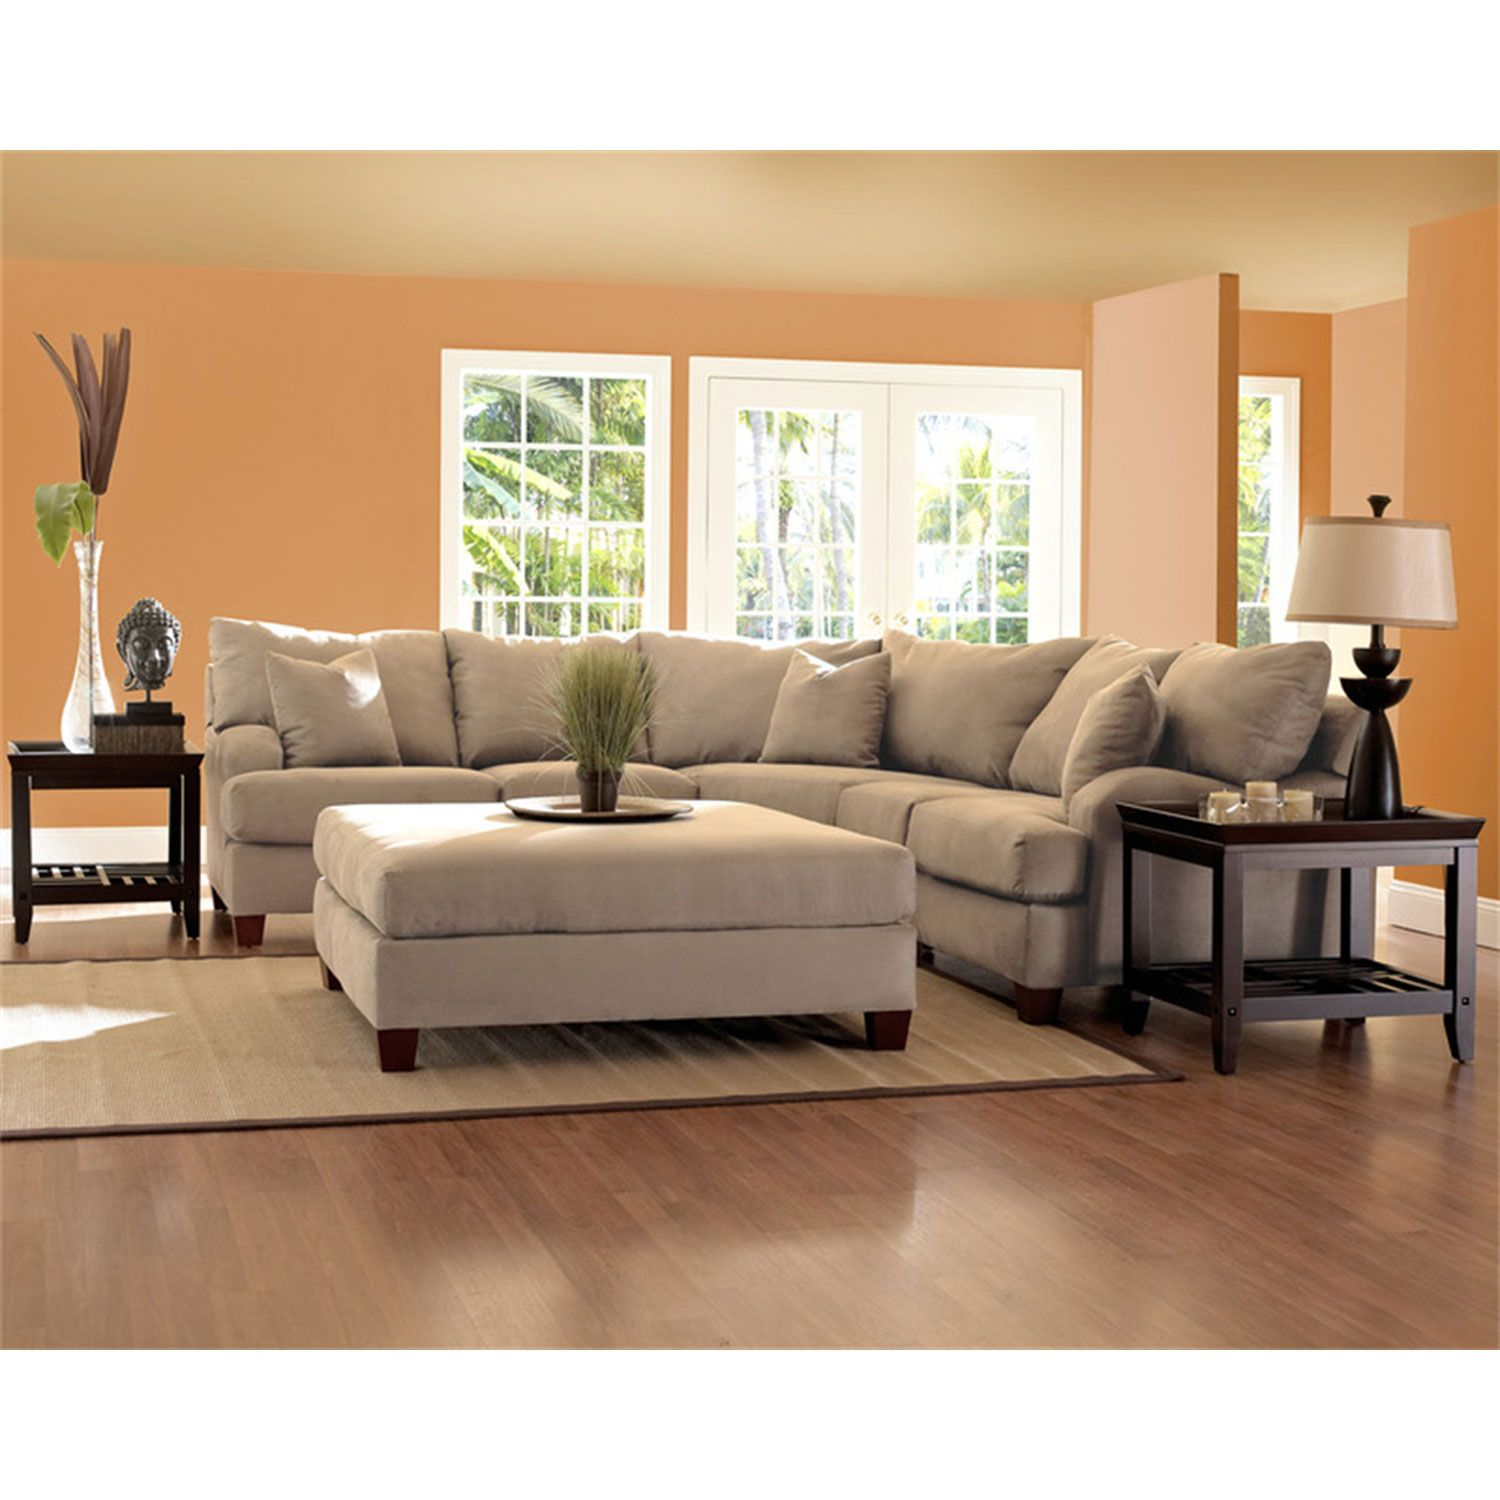 Canyon Beige Sectional Sectional Sofas Sofas & Sectionals Living